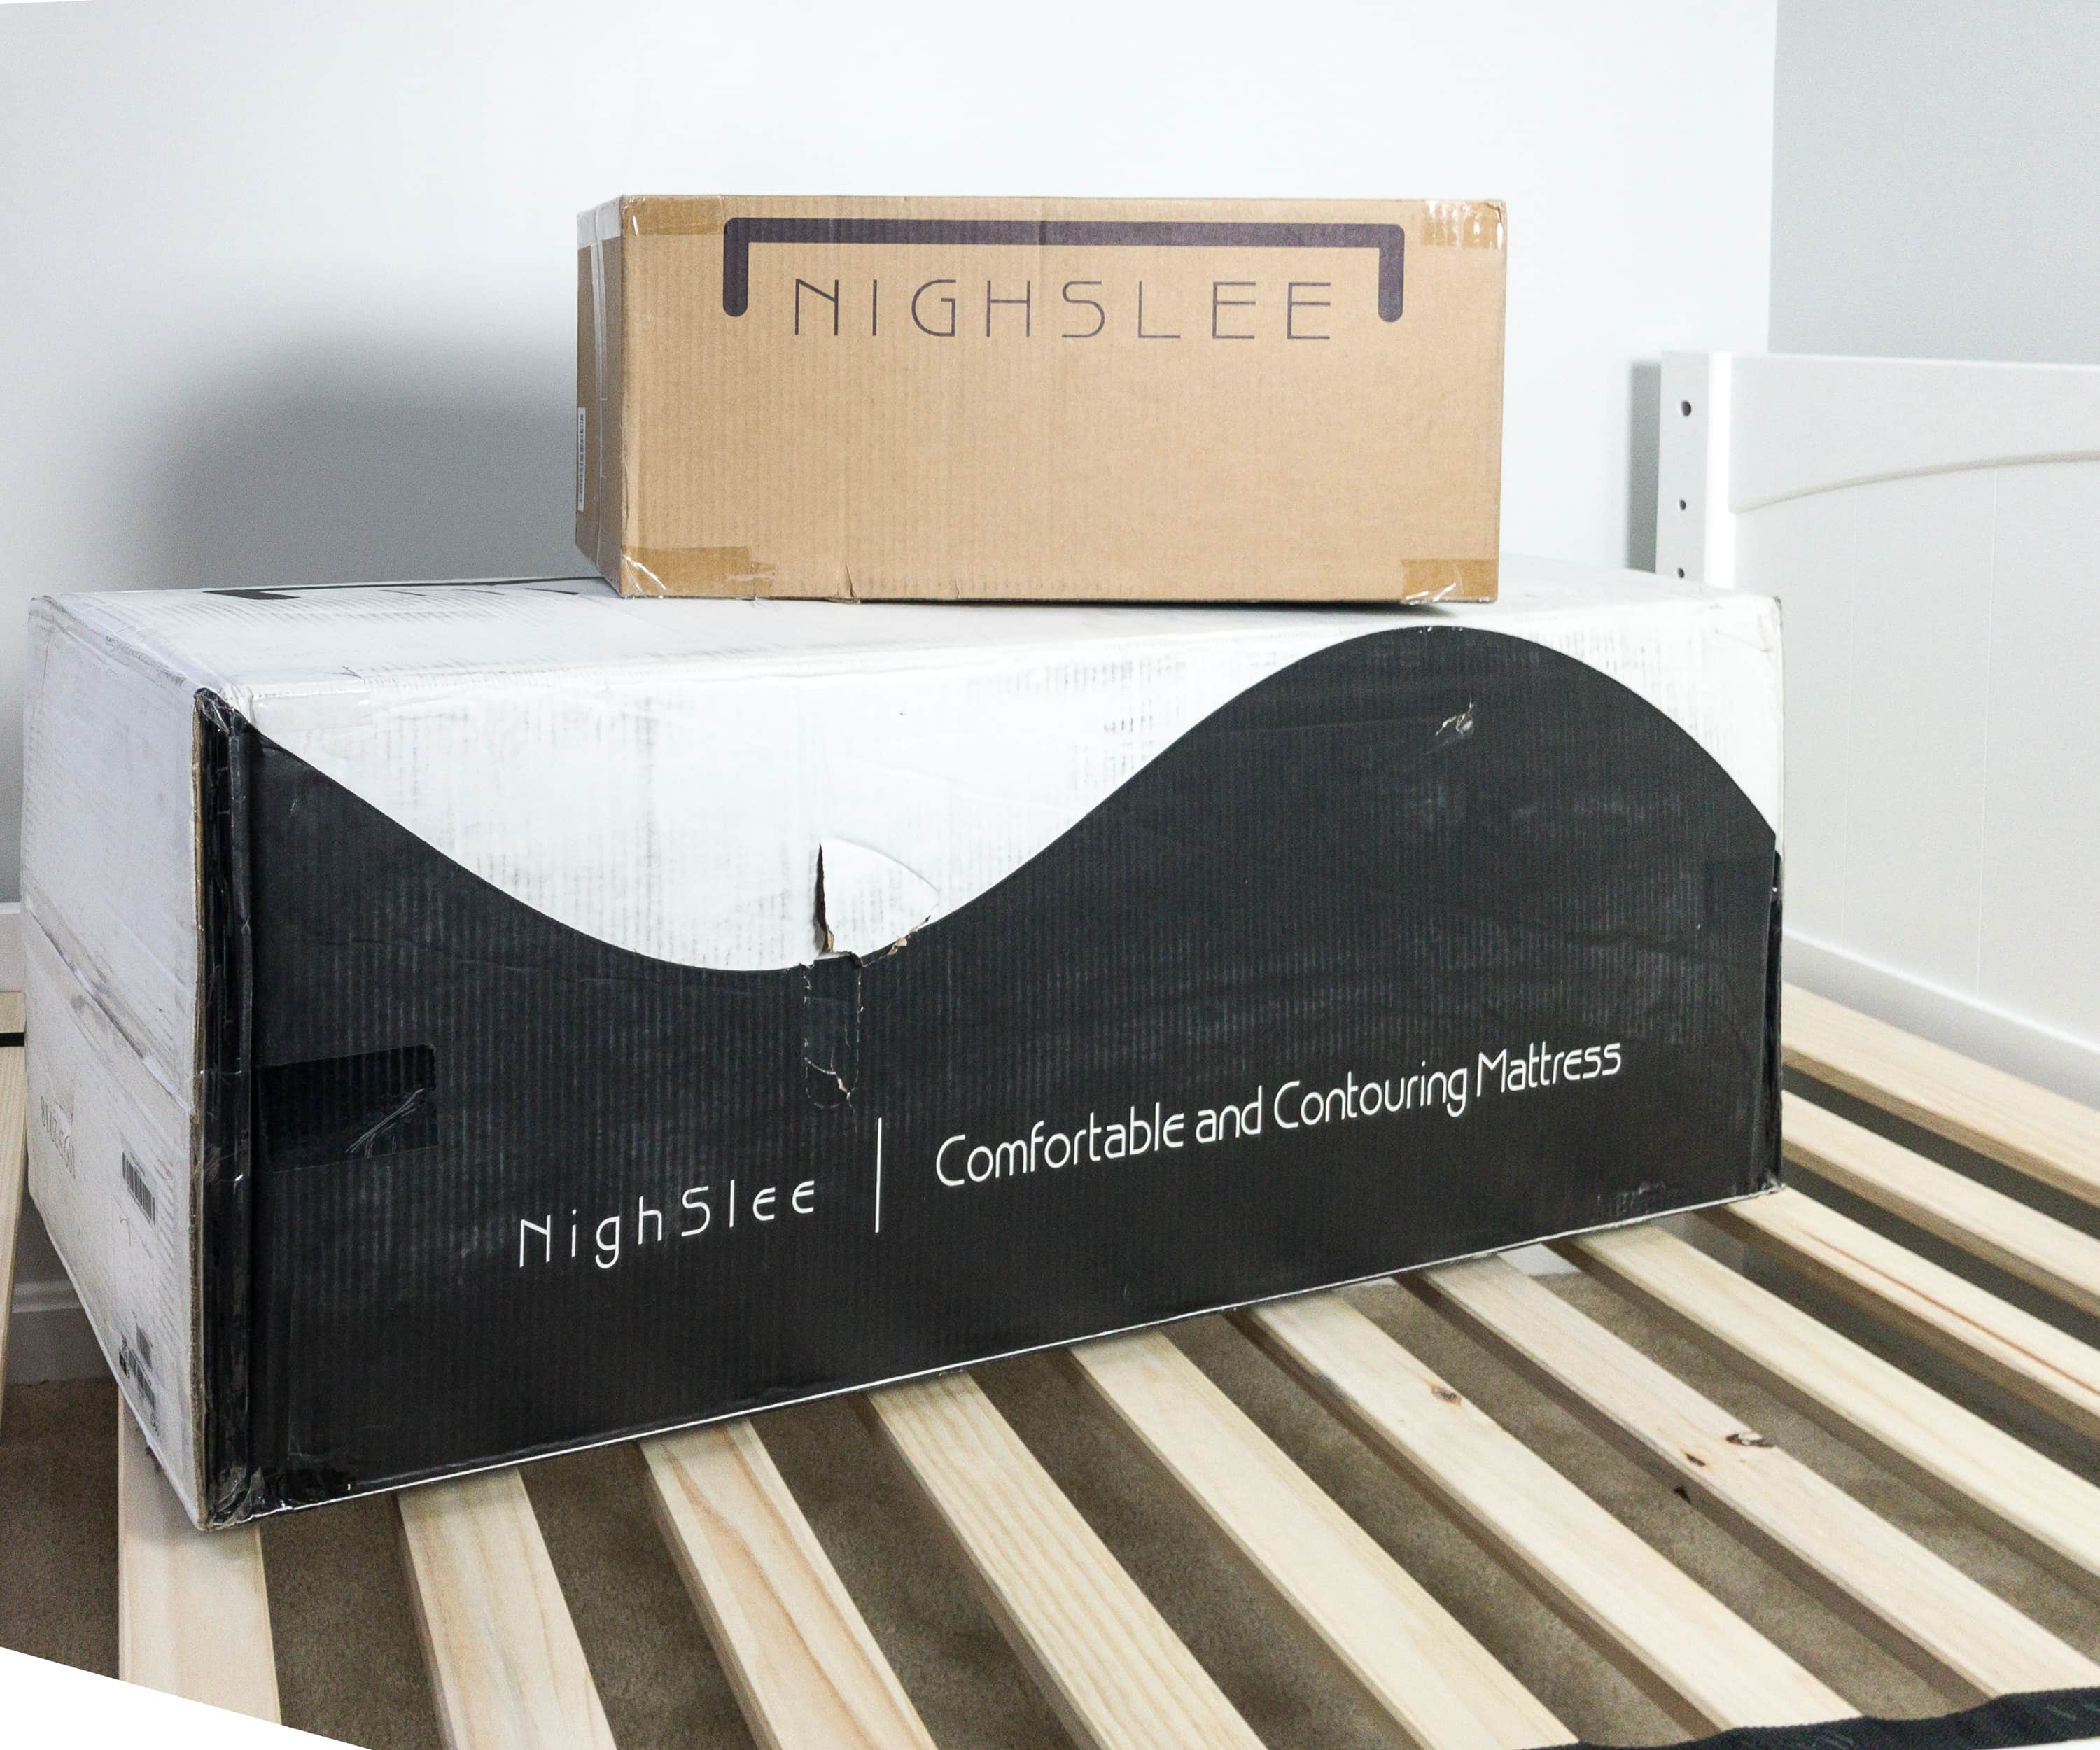 Nighslee Matress In A Box Review